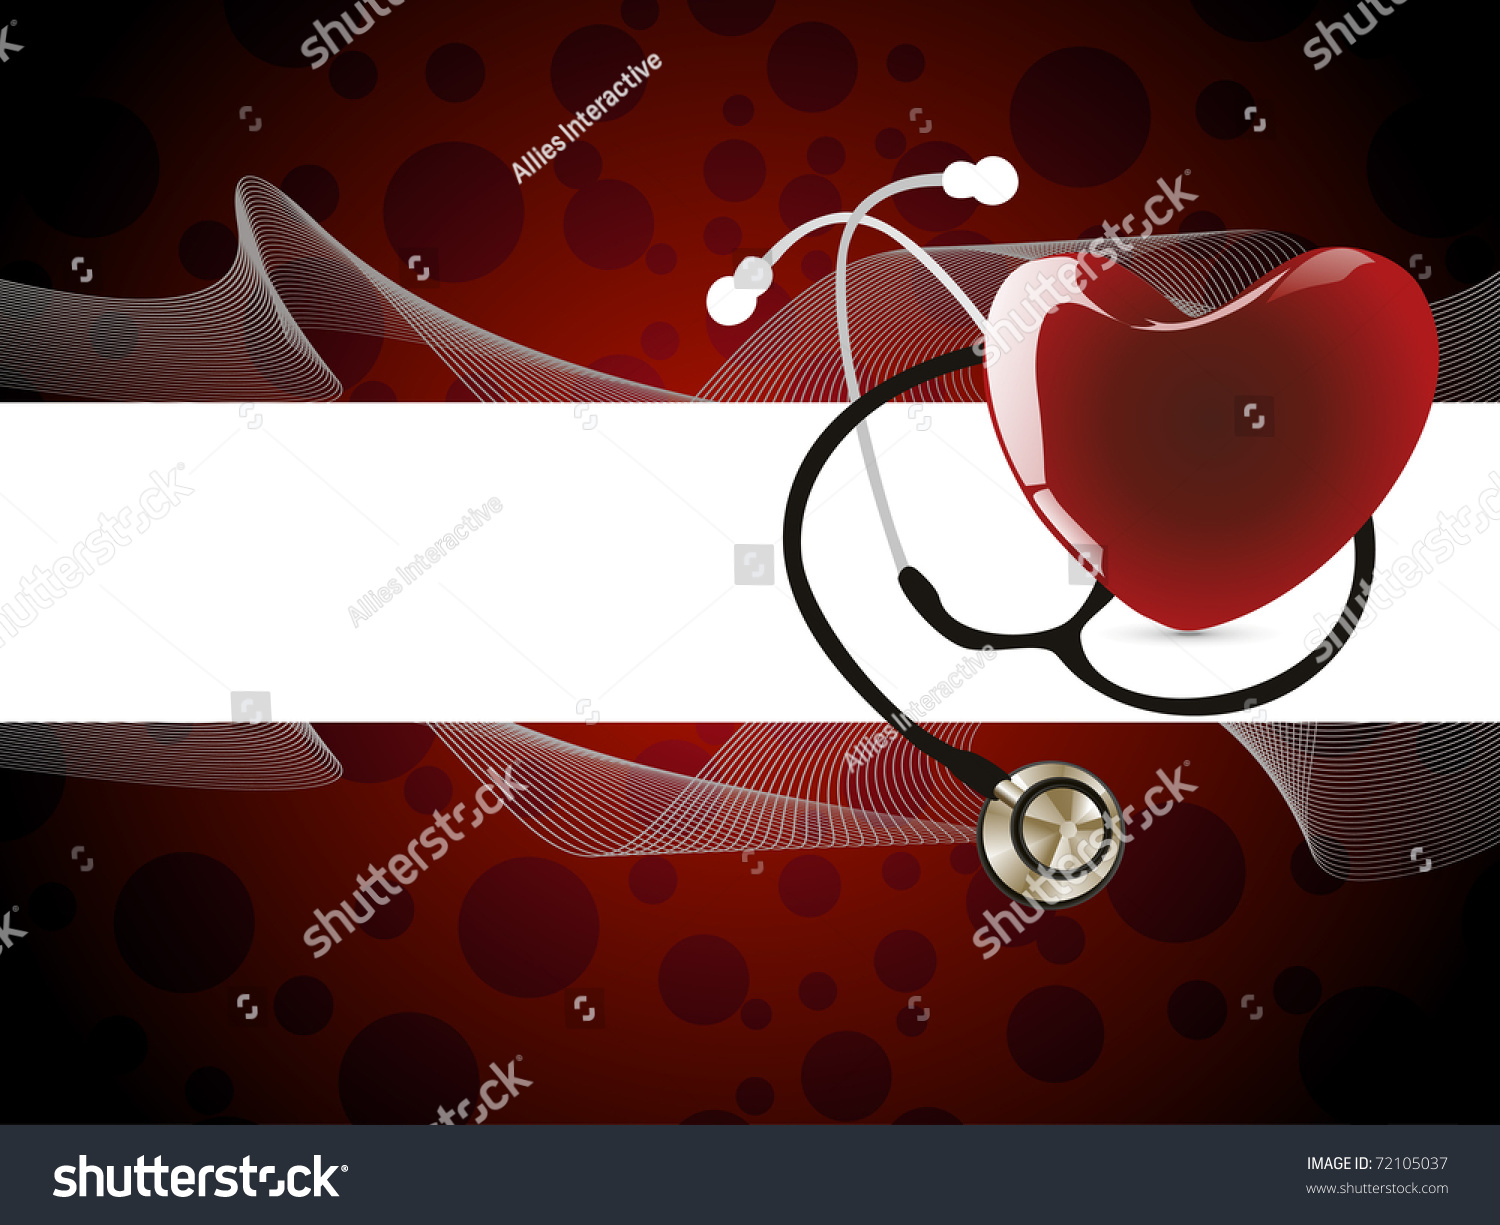 Abstract Wavy Background With Stethoscope And Romantic Red